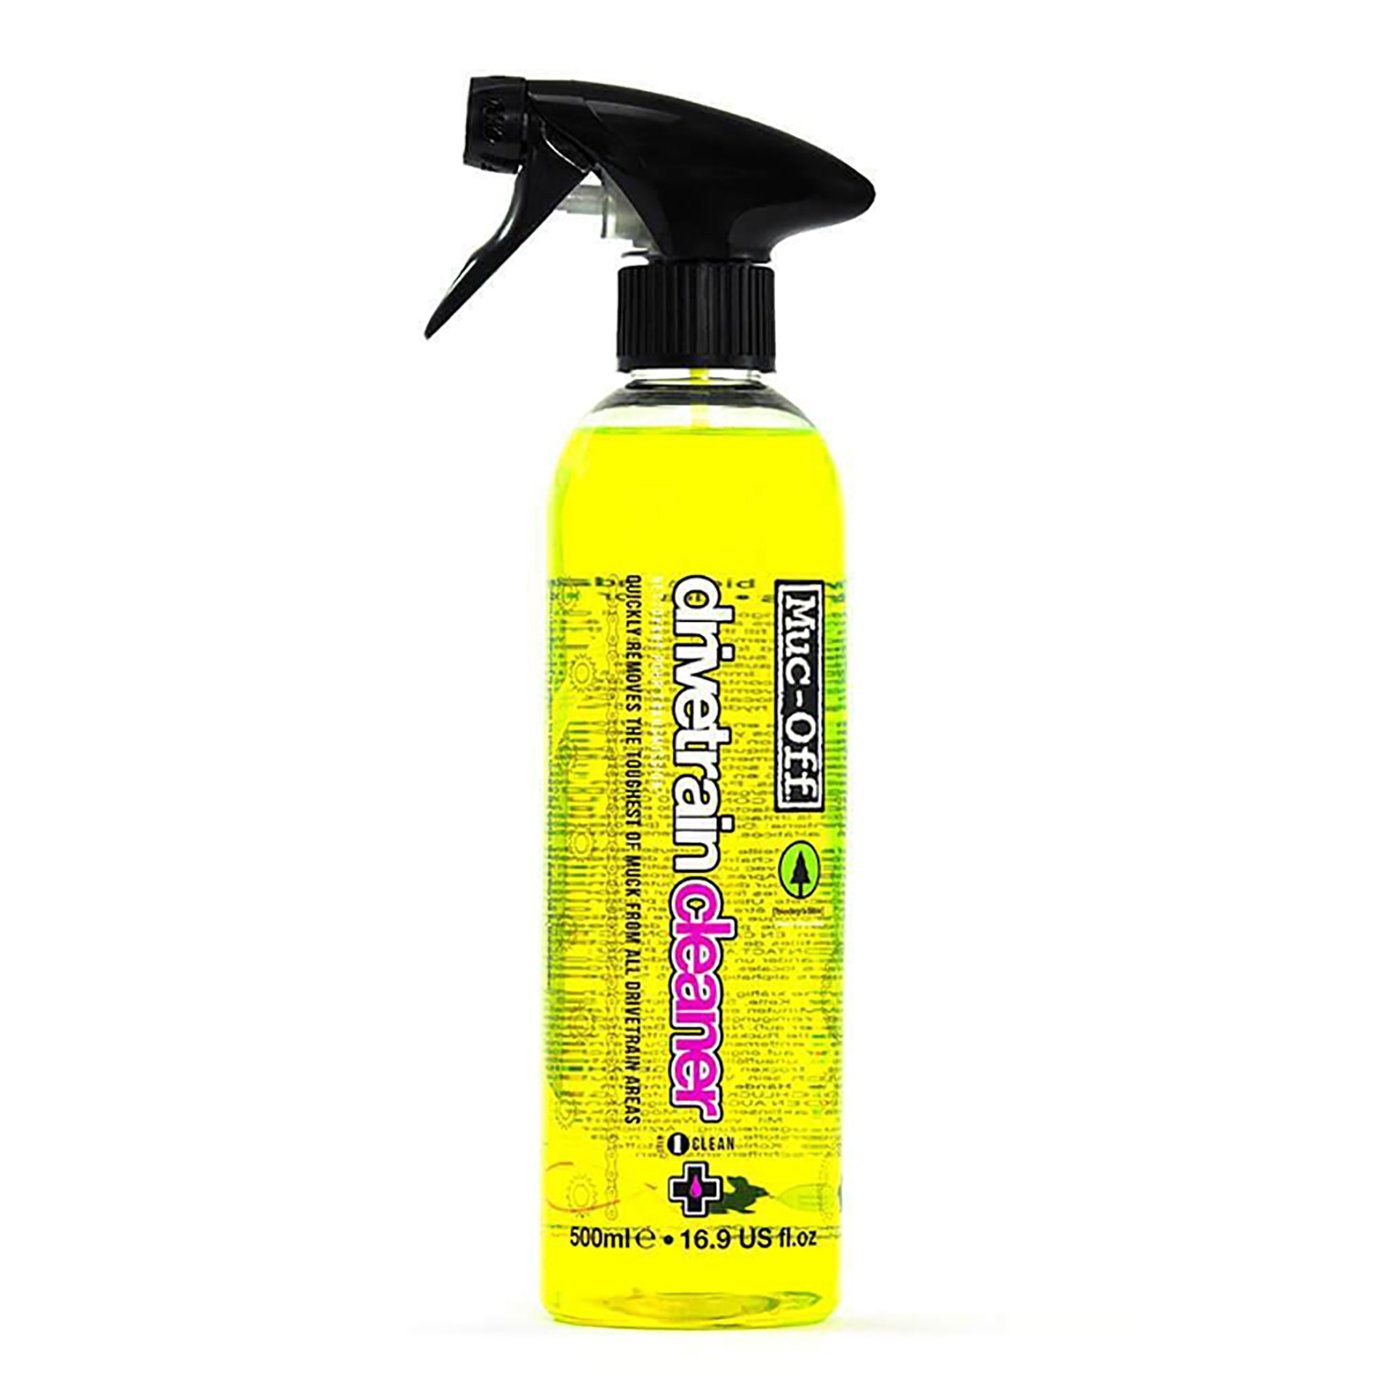 Buy a 1L Bike cleaner and 500ml Drivetrain cleaner and get a 50ml Lube FREE